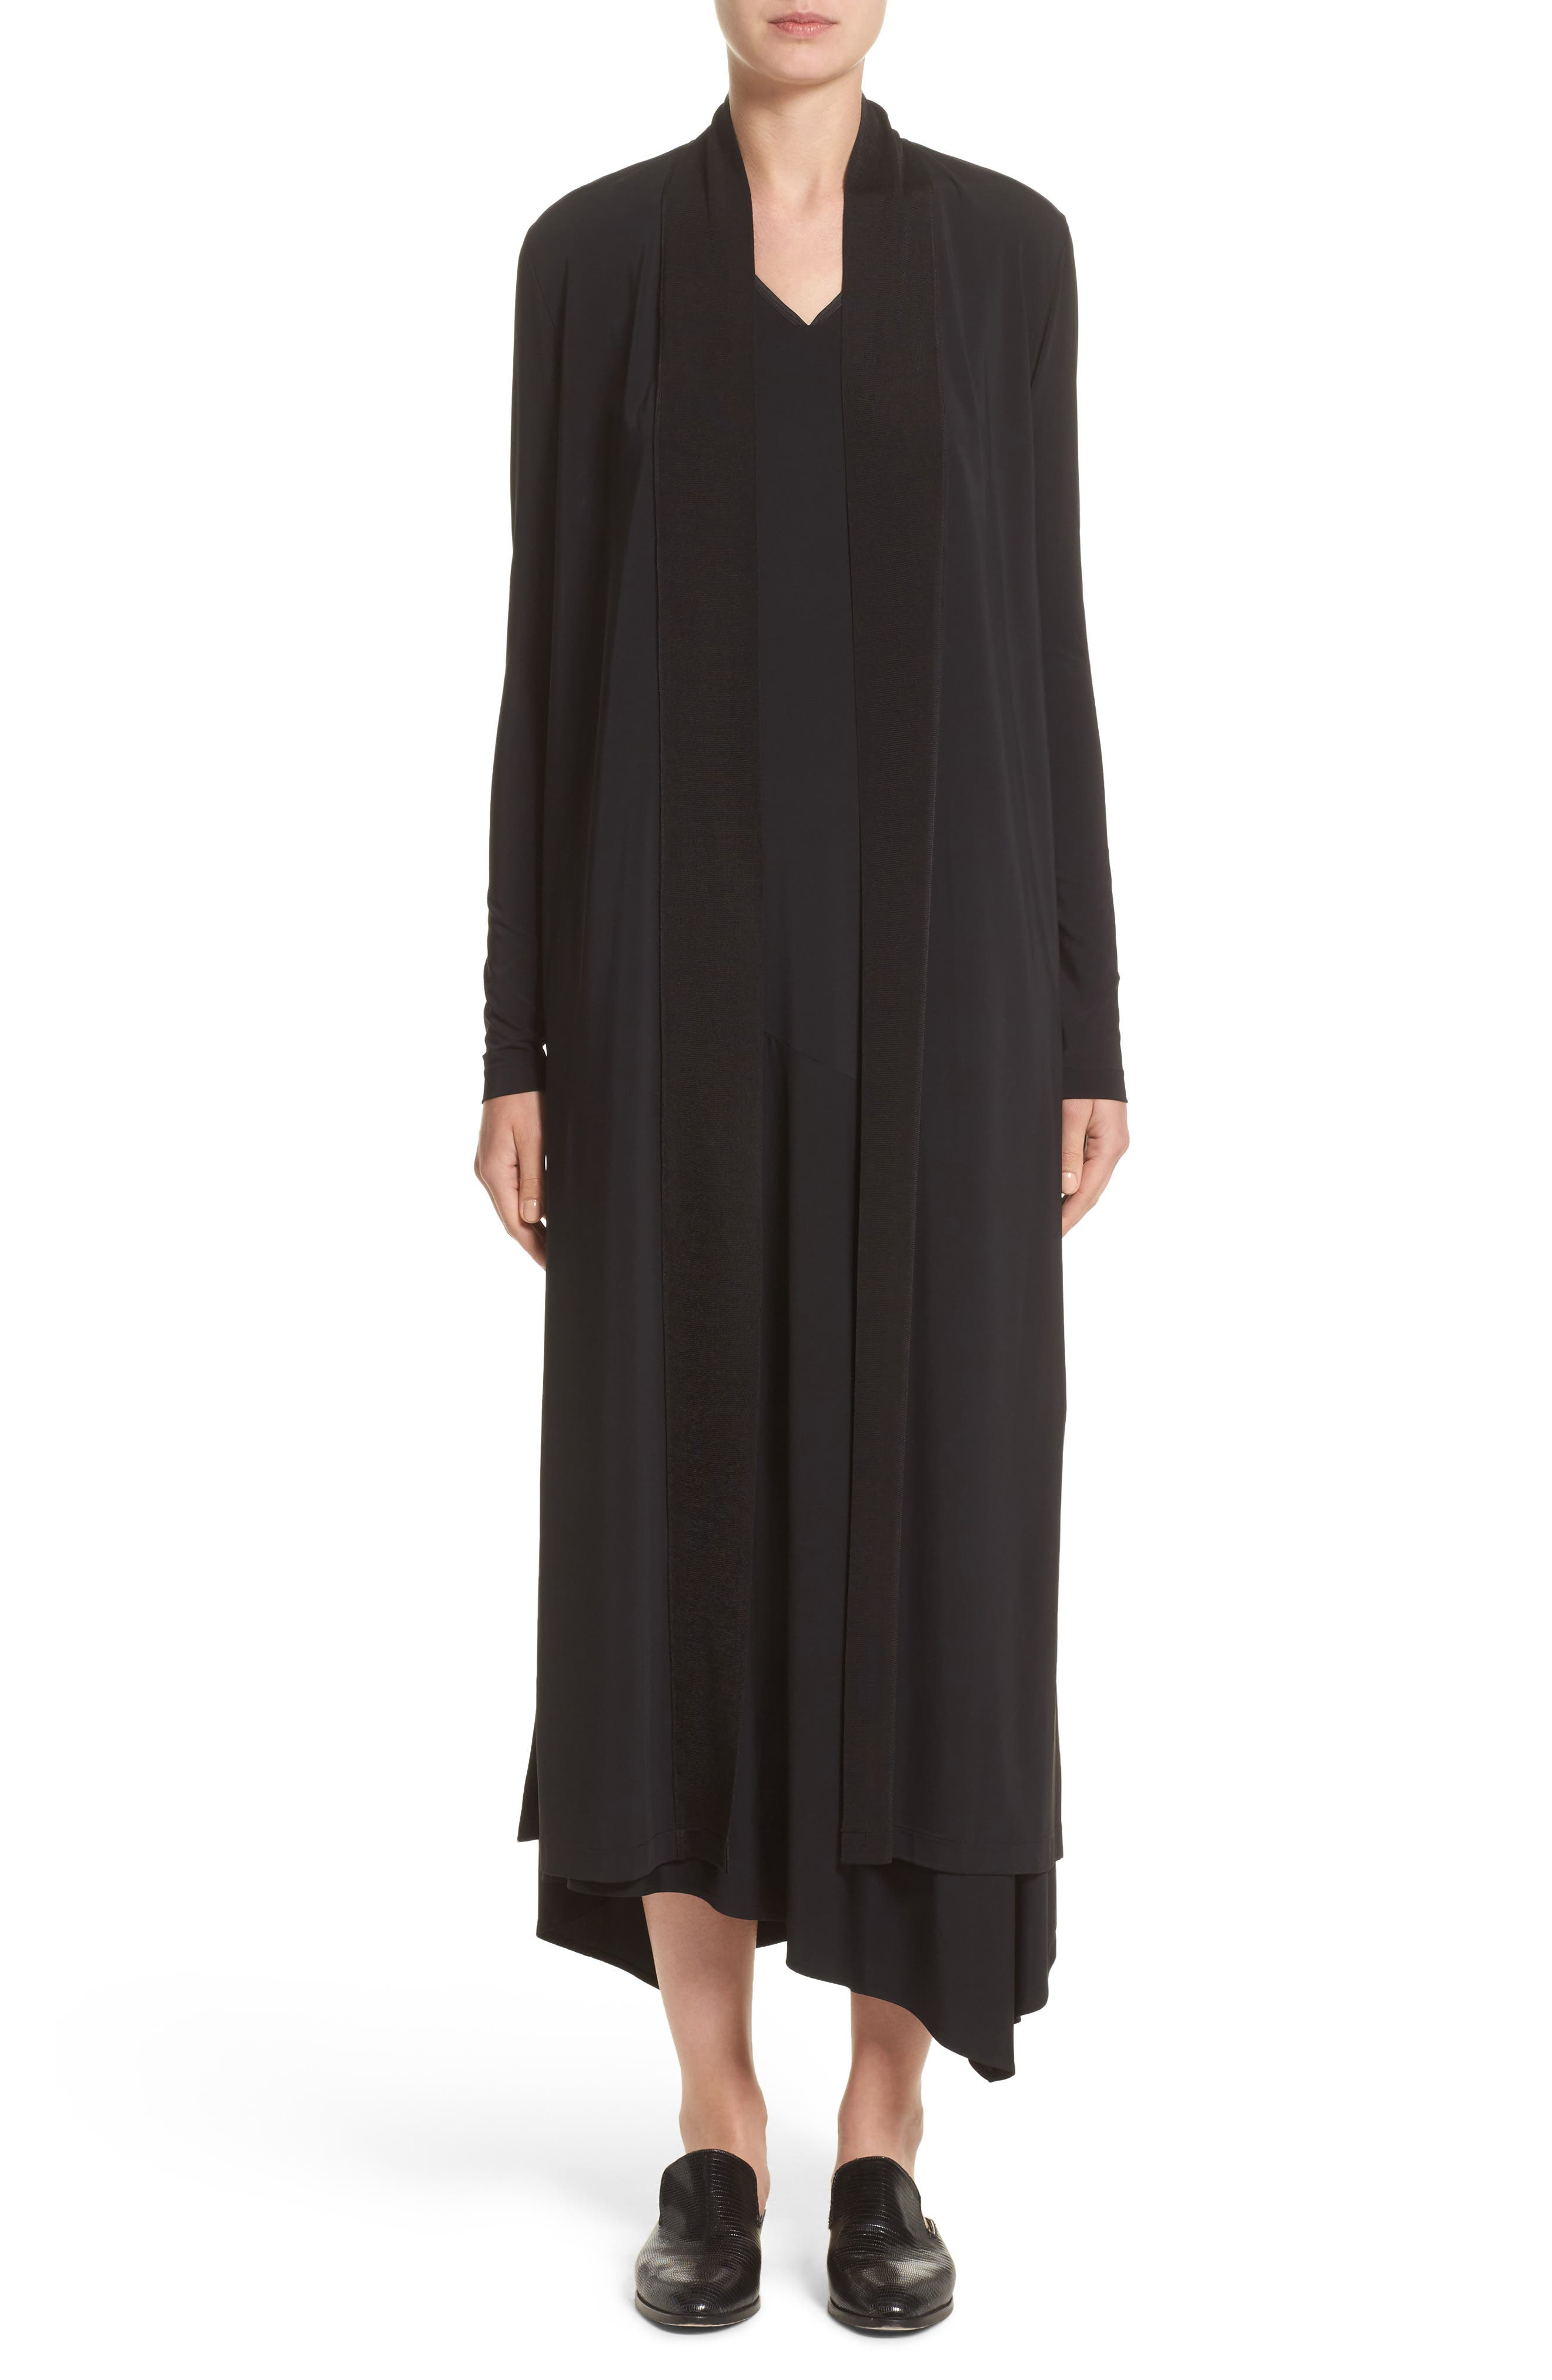 Alternate Image 1 Selected - Lafayette 148 New York Cultivated Crepe Jersey Duster